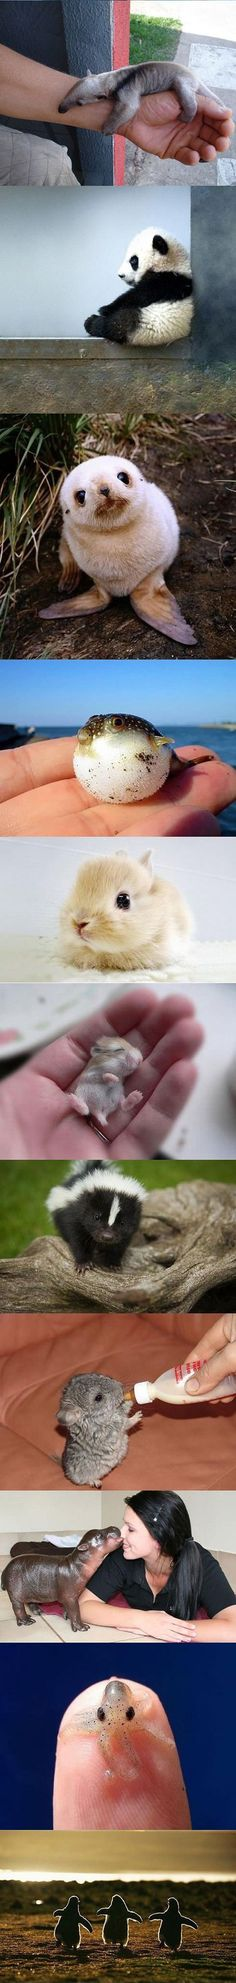 Looking at these photos of baby animals really make me wish they stay in their baby form. Awww! I just can't stop smiling